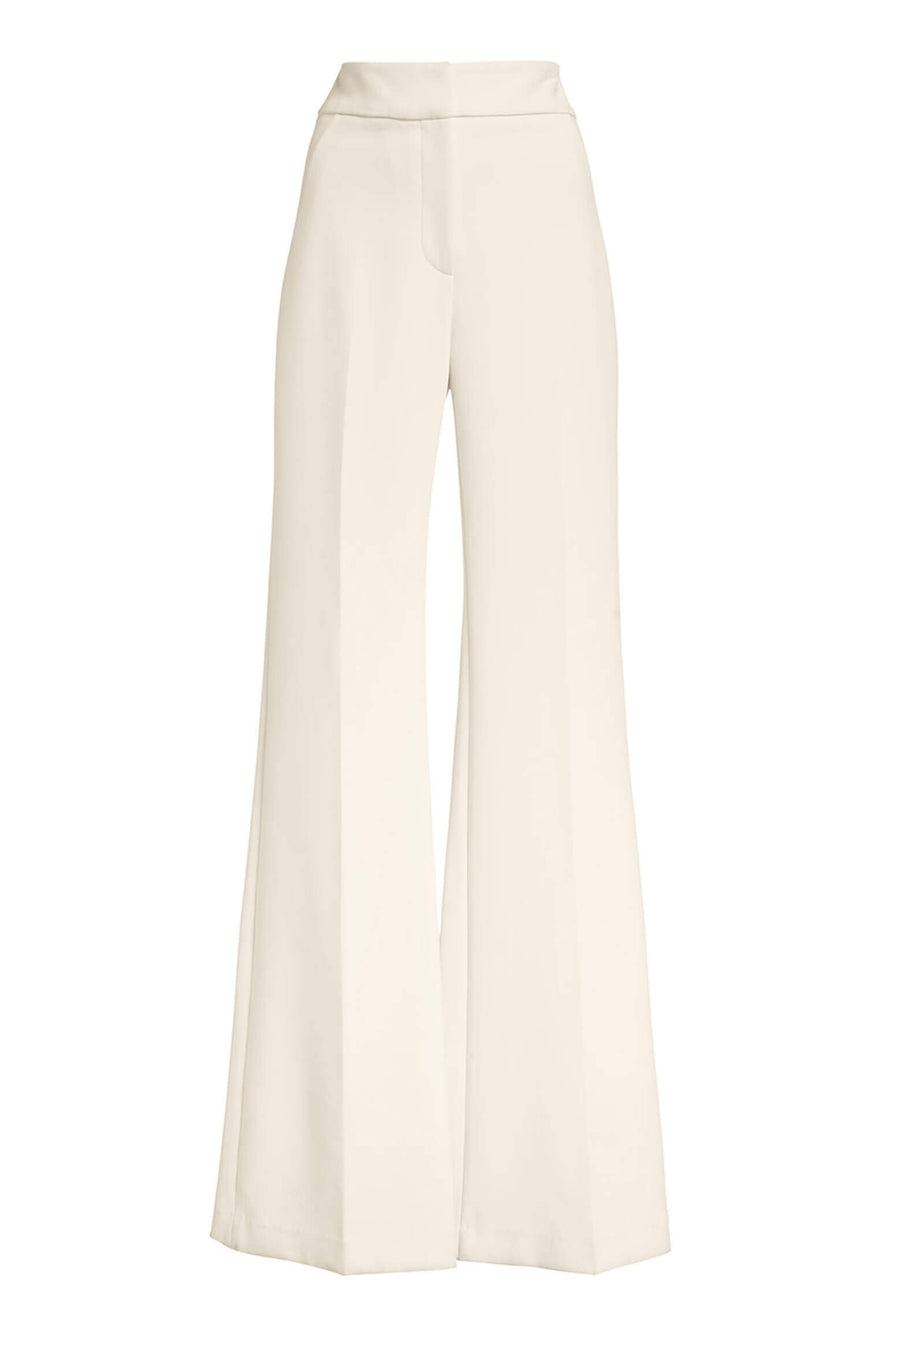 Veronica Beard Lebone Pant in Antique White from The New Trend